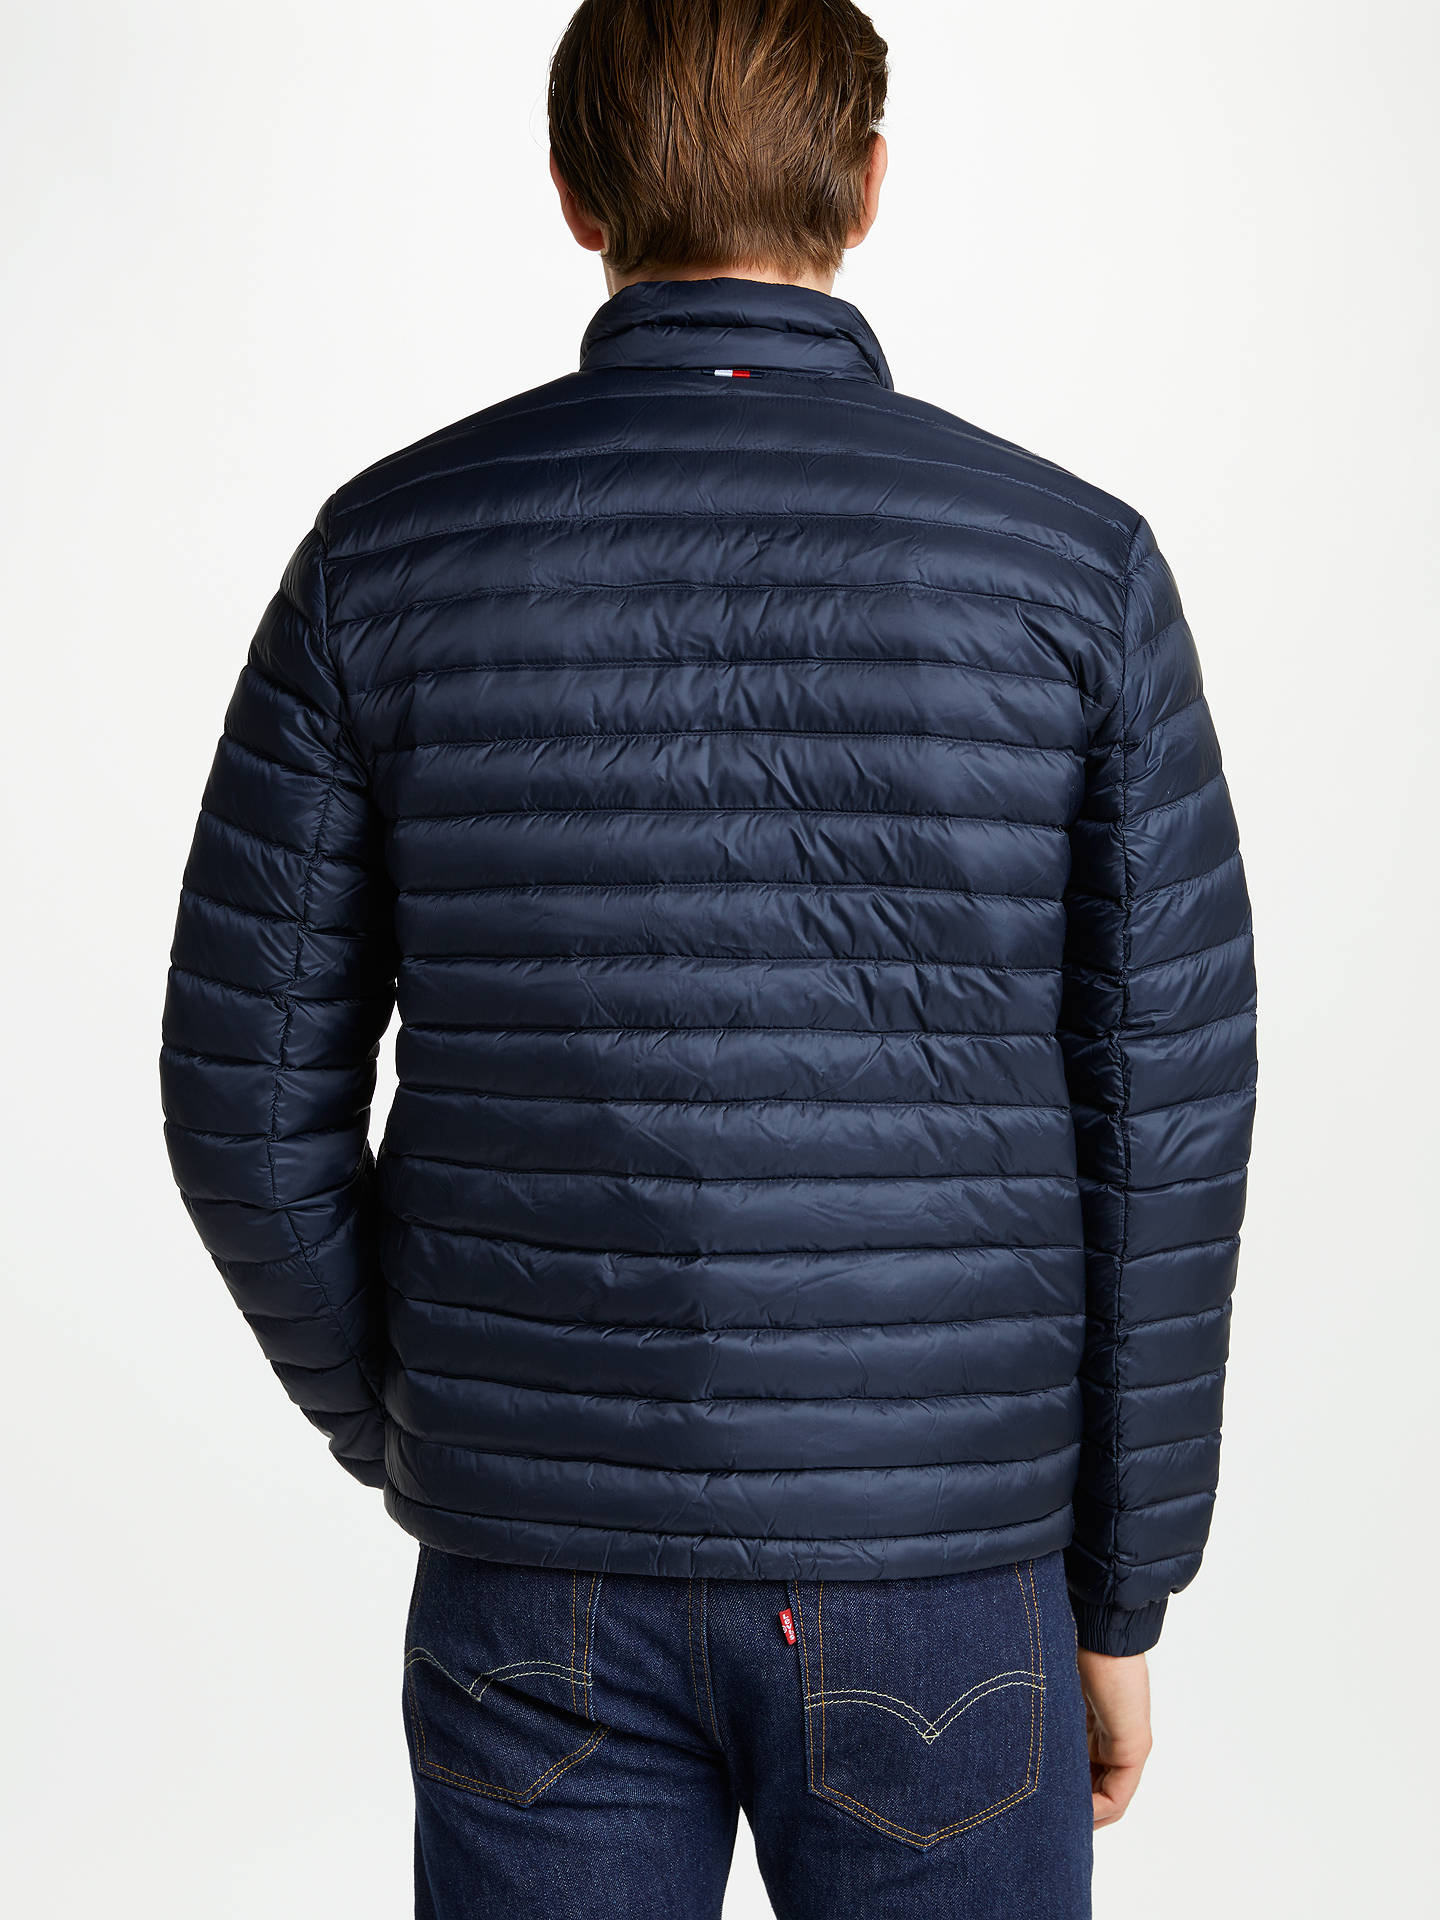 1ff257cfd6f2 ... Buy Tommy Hilfiger Packable Down Bomber Jacket